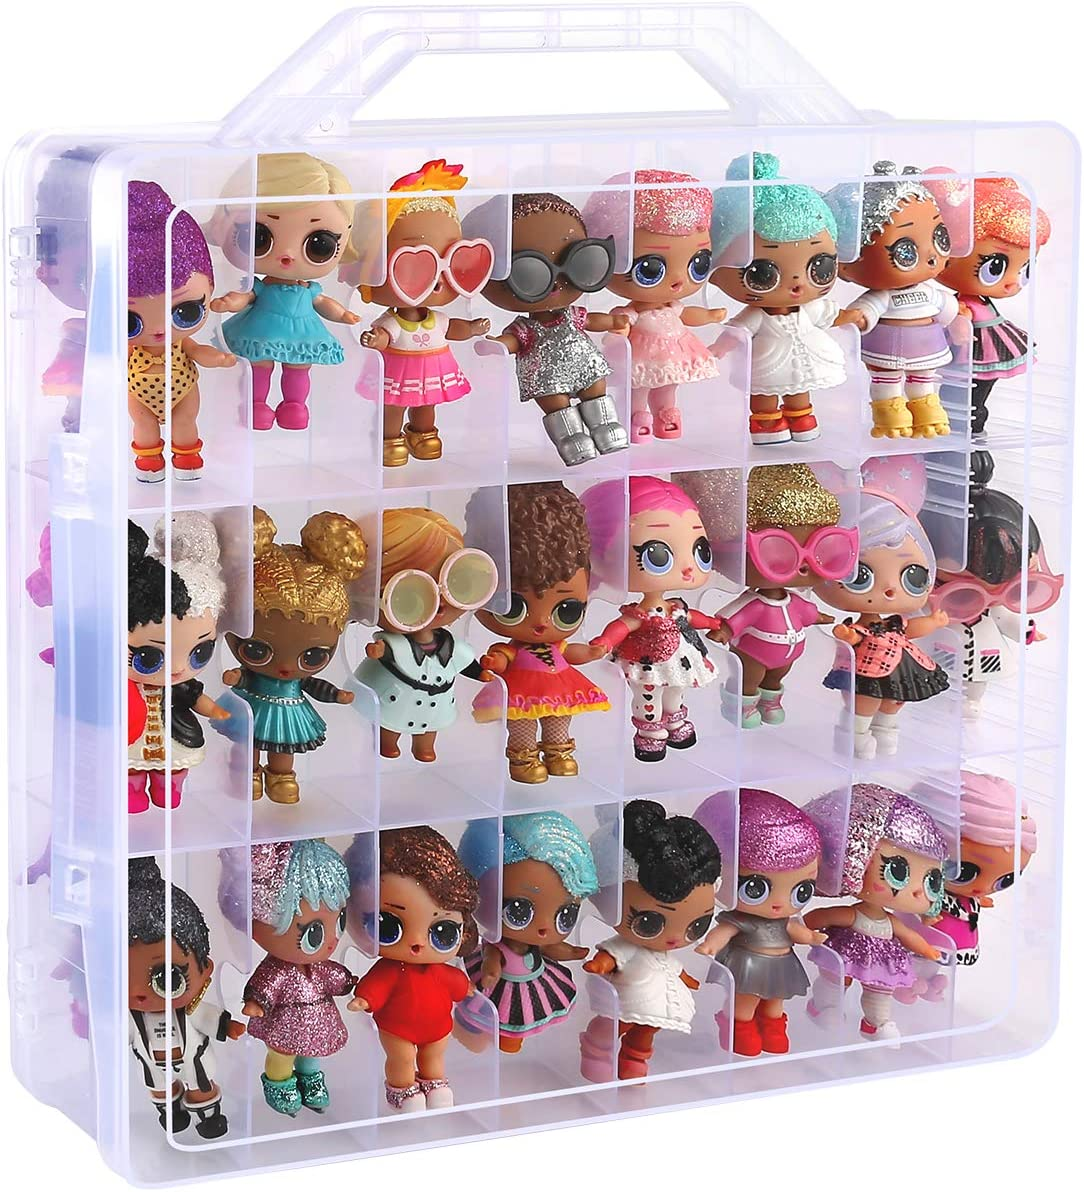 Toys Organizer Storage Case for LOL Surprise O.M.G Dolls, Bakugan, Calico Critters, LPS Figures, Shopkins, Lego Dimensions and More, 48 Compartment - Double Side